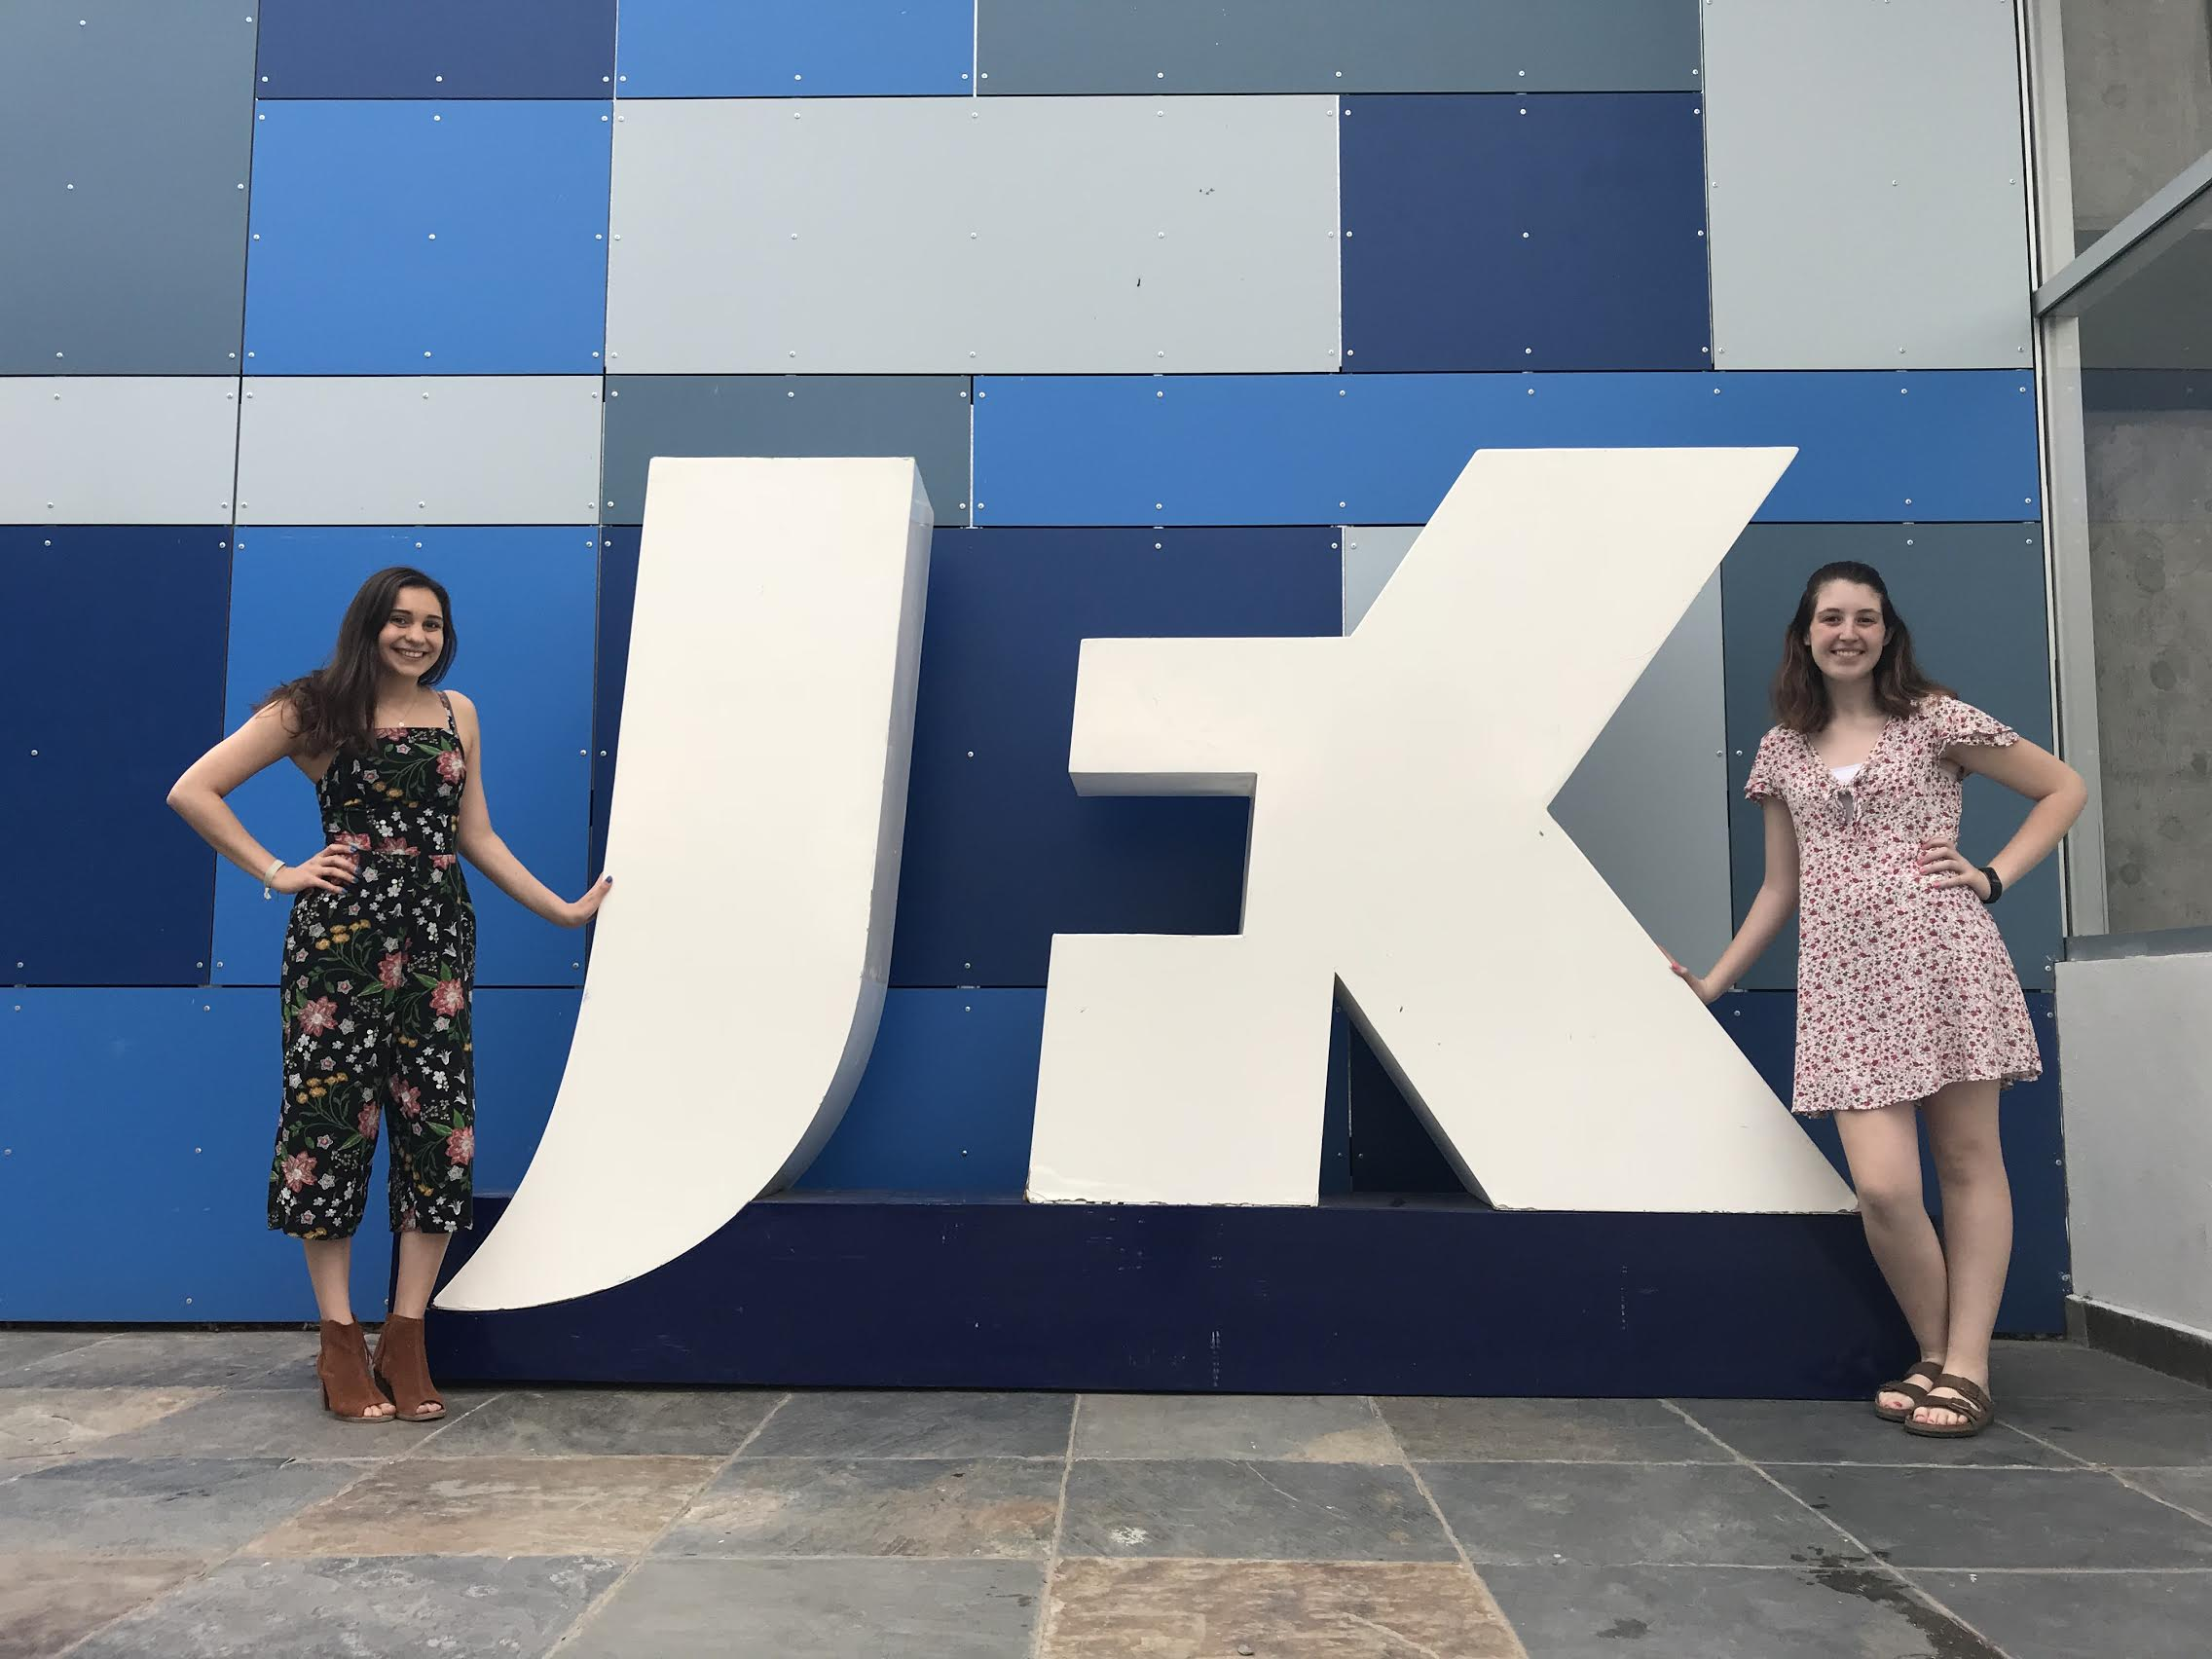 Allison and Maddie standing by the JFK school sign